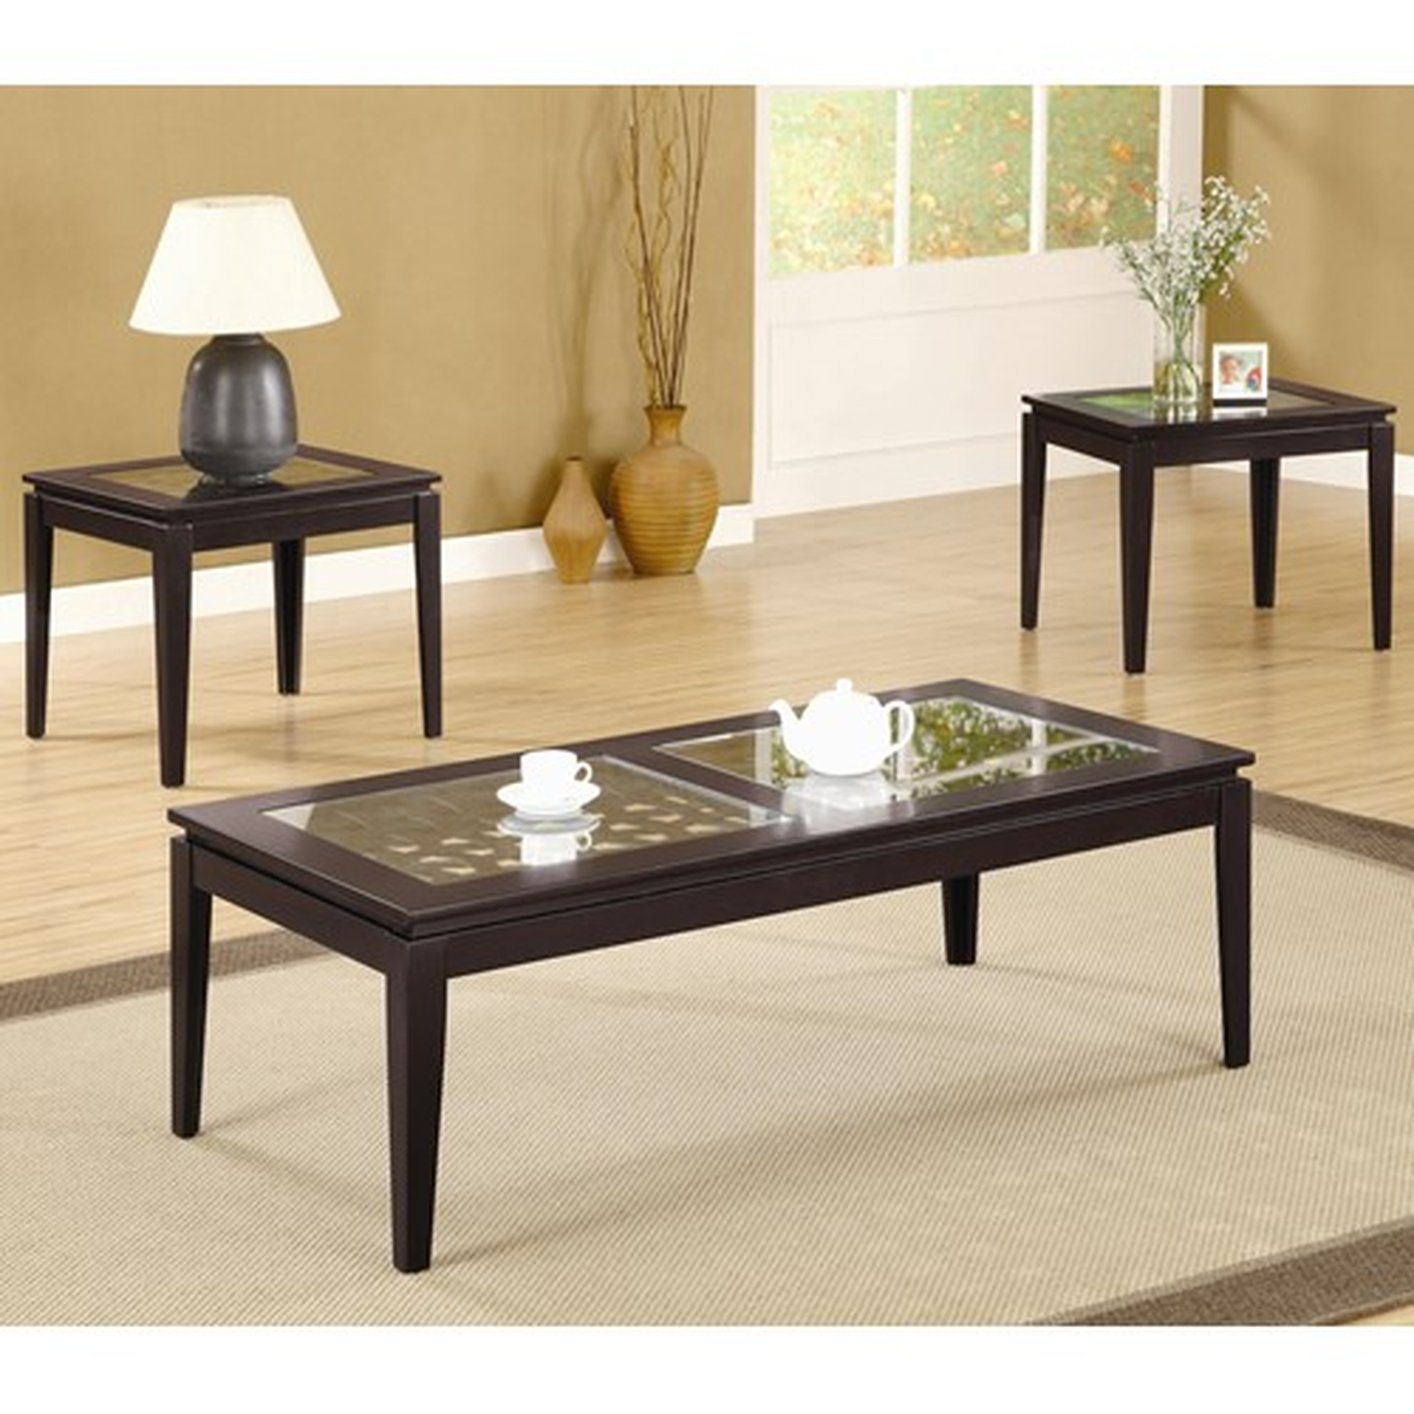 Coaster 700205 Brown Glass Coffee Table Set Steal A Sofa